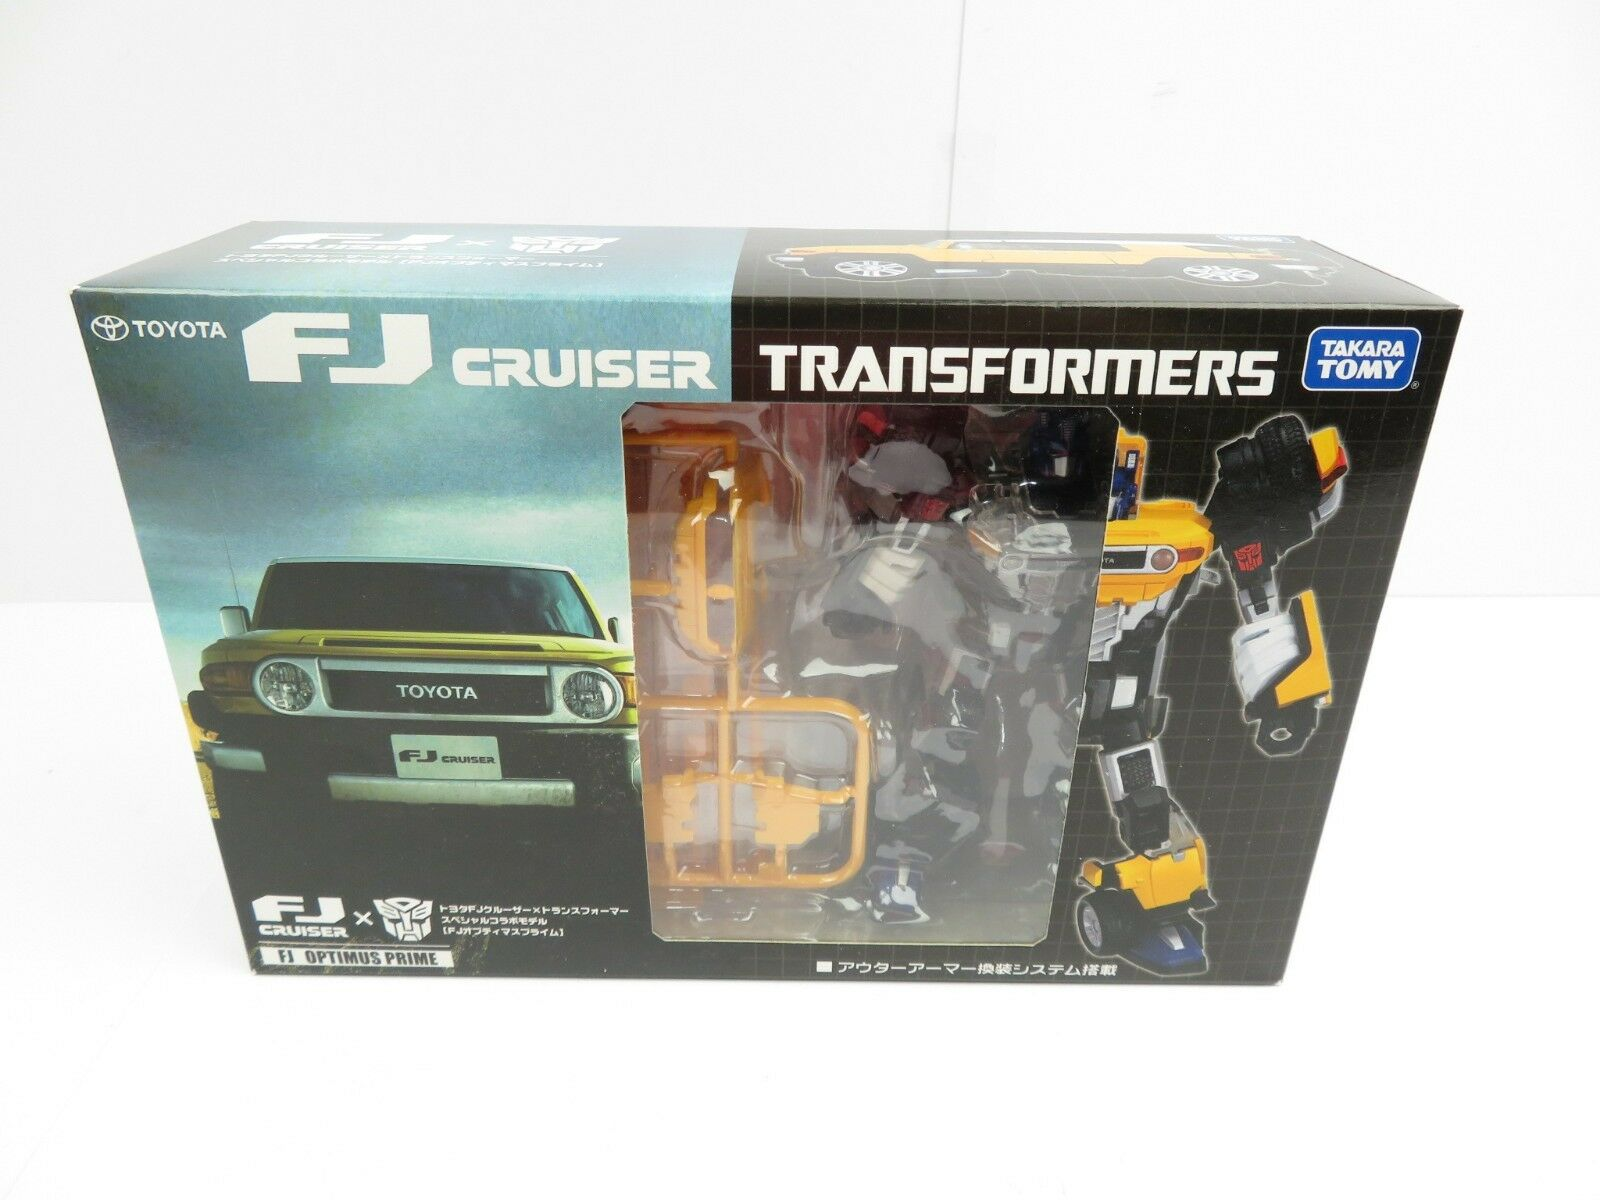 Transformers - Toyota - FJ Cruiser